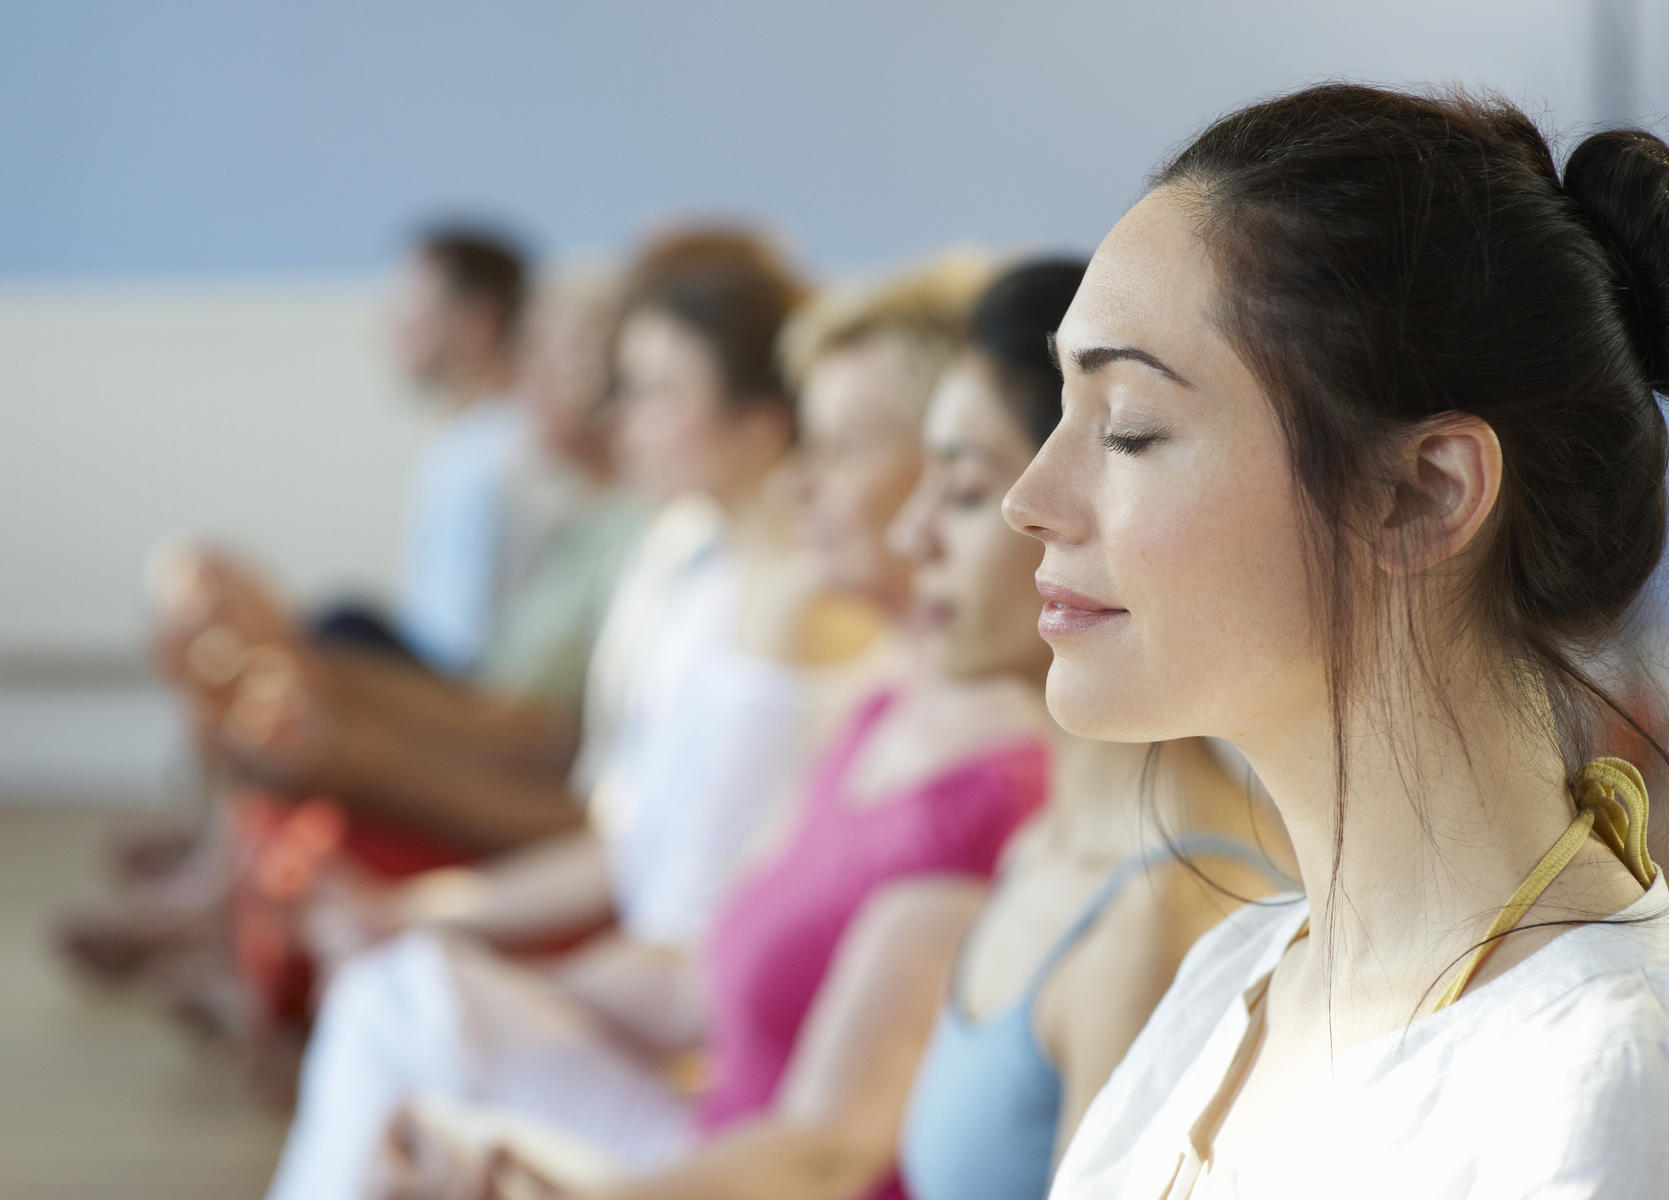 10 Ways for Busy Moms to Find Their Zen in 5 Minutes